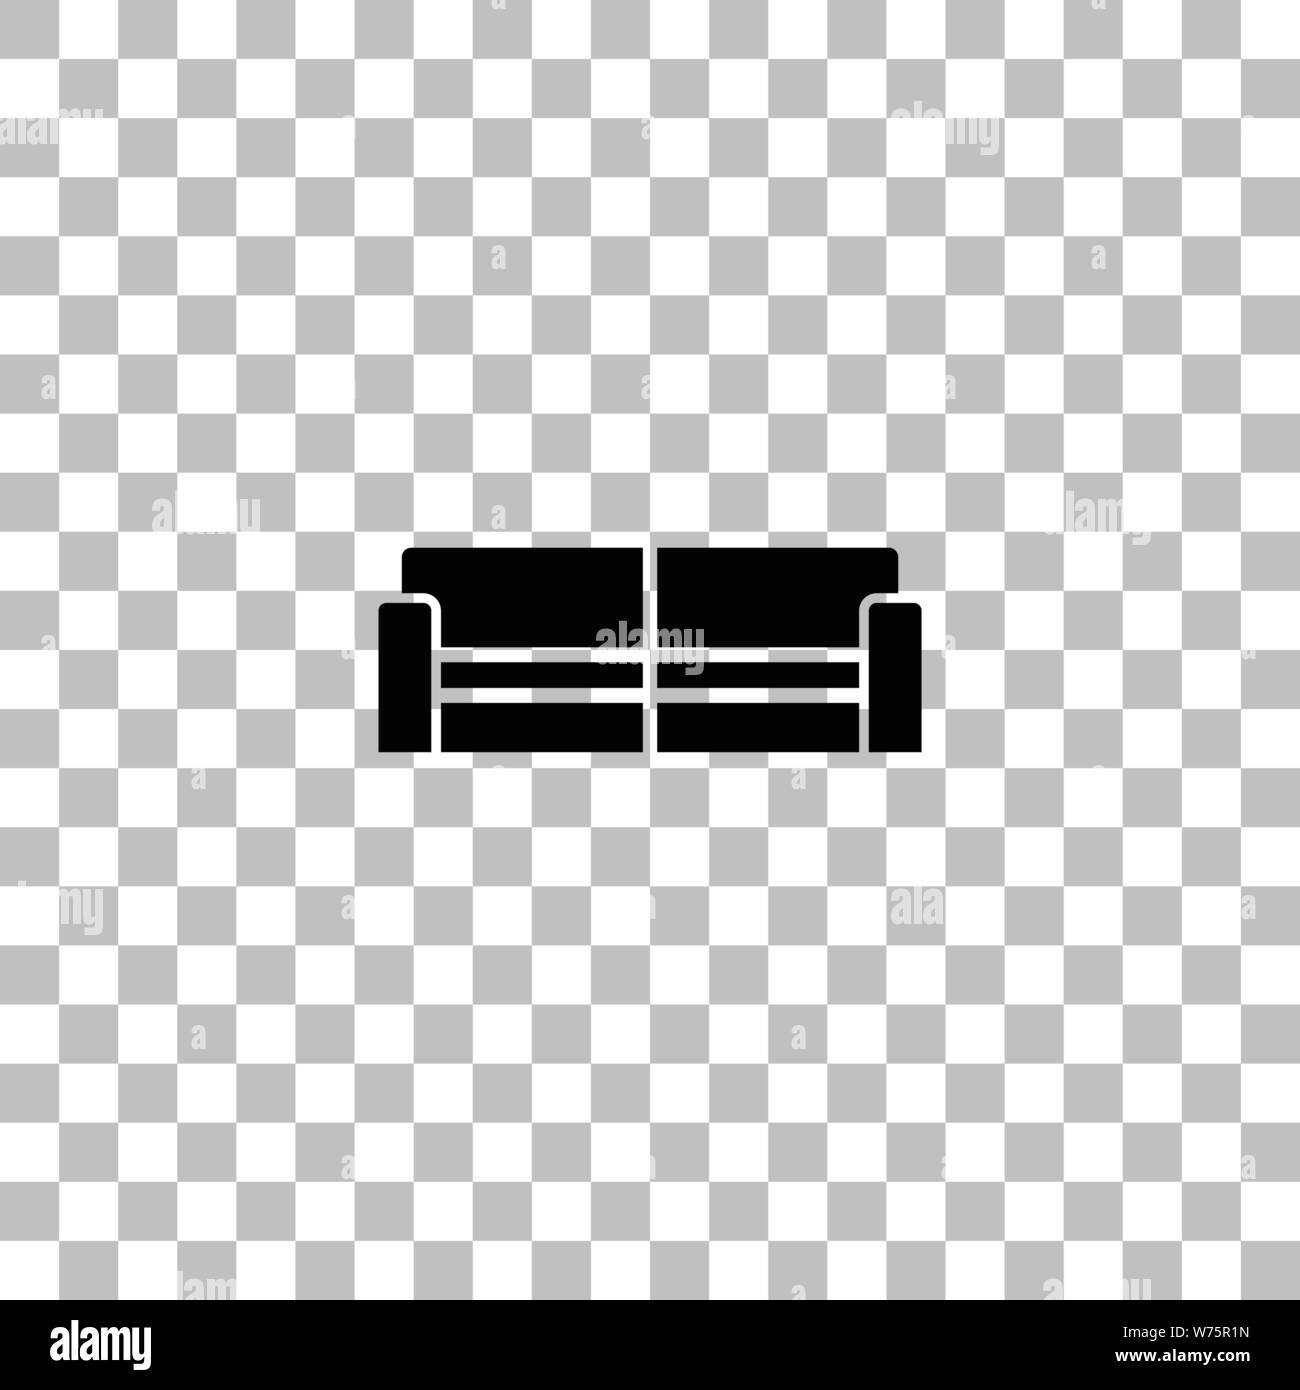 Swell Sofa Black Flat Icon On A Transparent Background Pictogram Theyellowbook Wood Chair Design Ideas Theyellowbookinfo